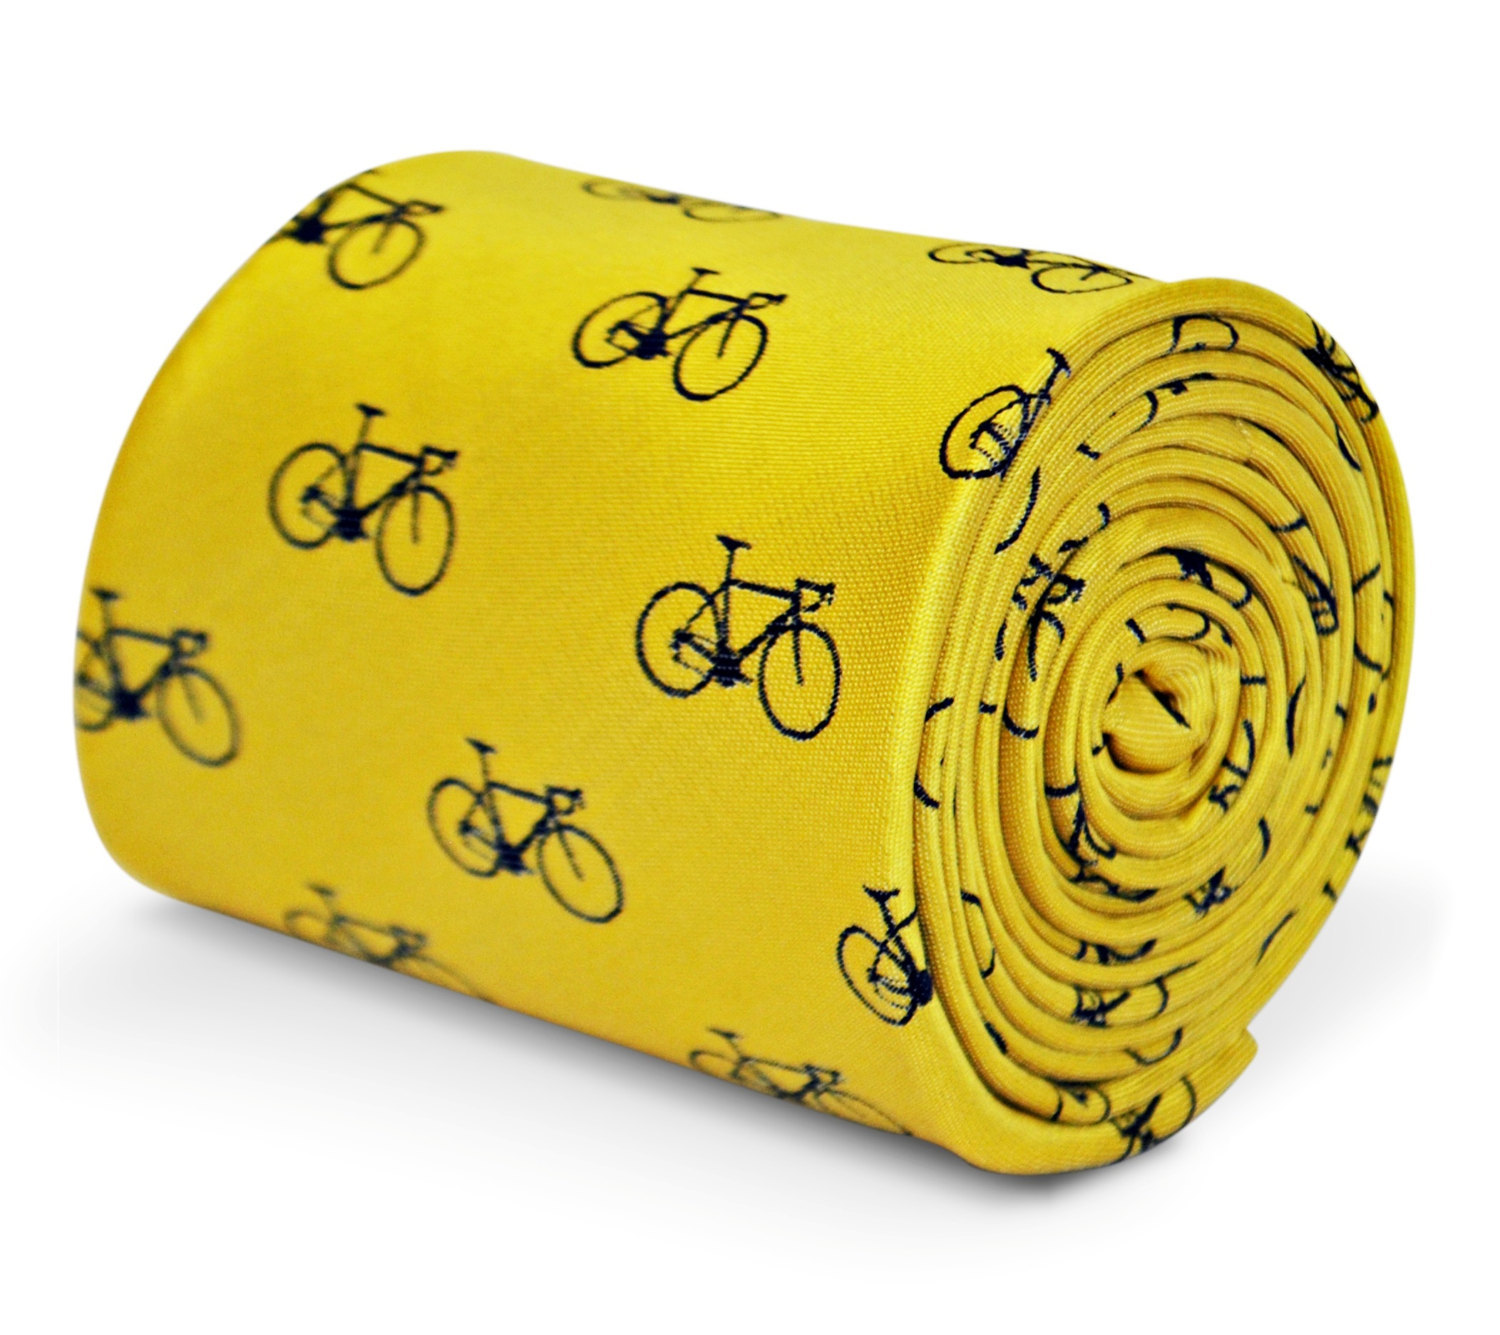 yellow tie with bicycle design with signature floral design to the rear by Frede